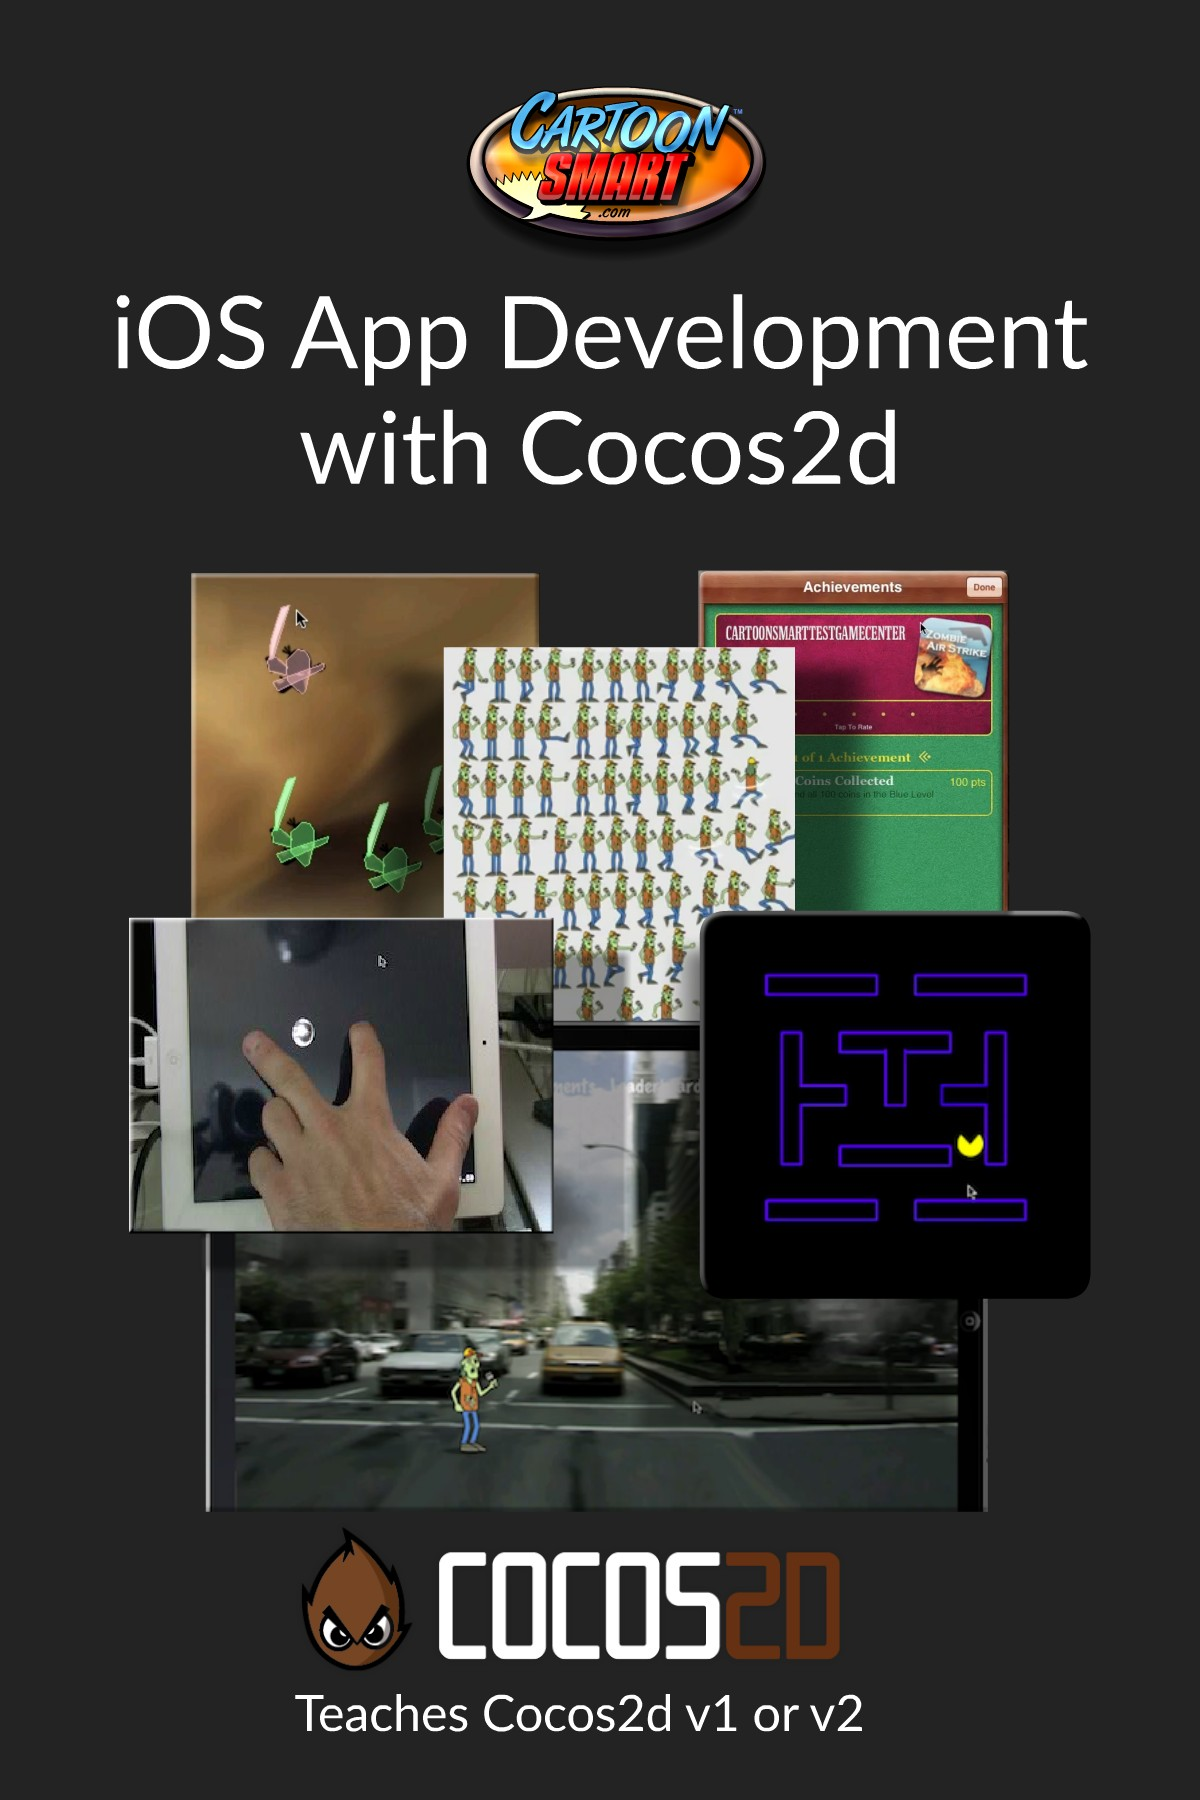 iOS App Development with Cocos2d - Video Tutorials